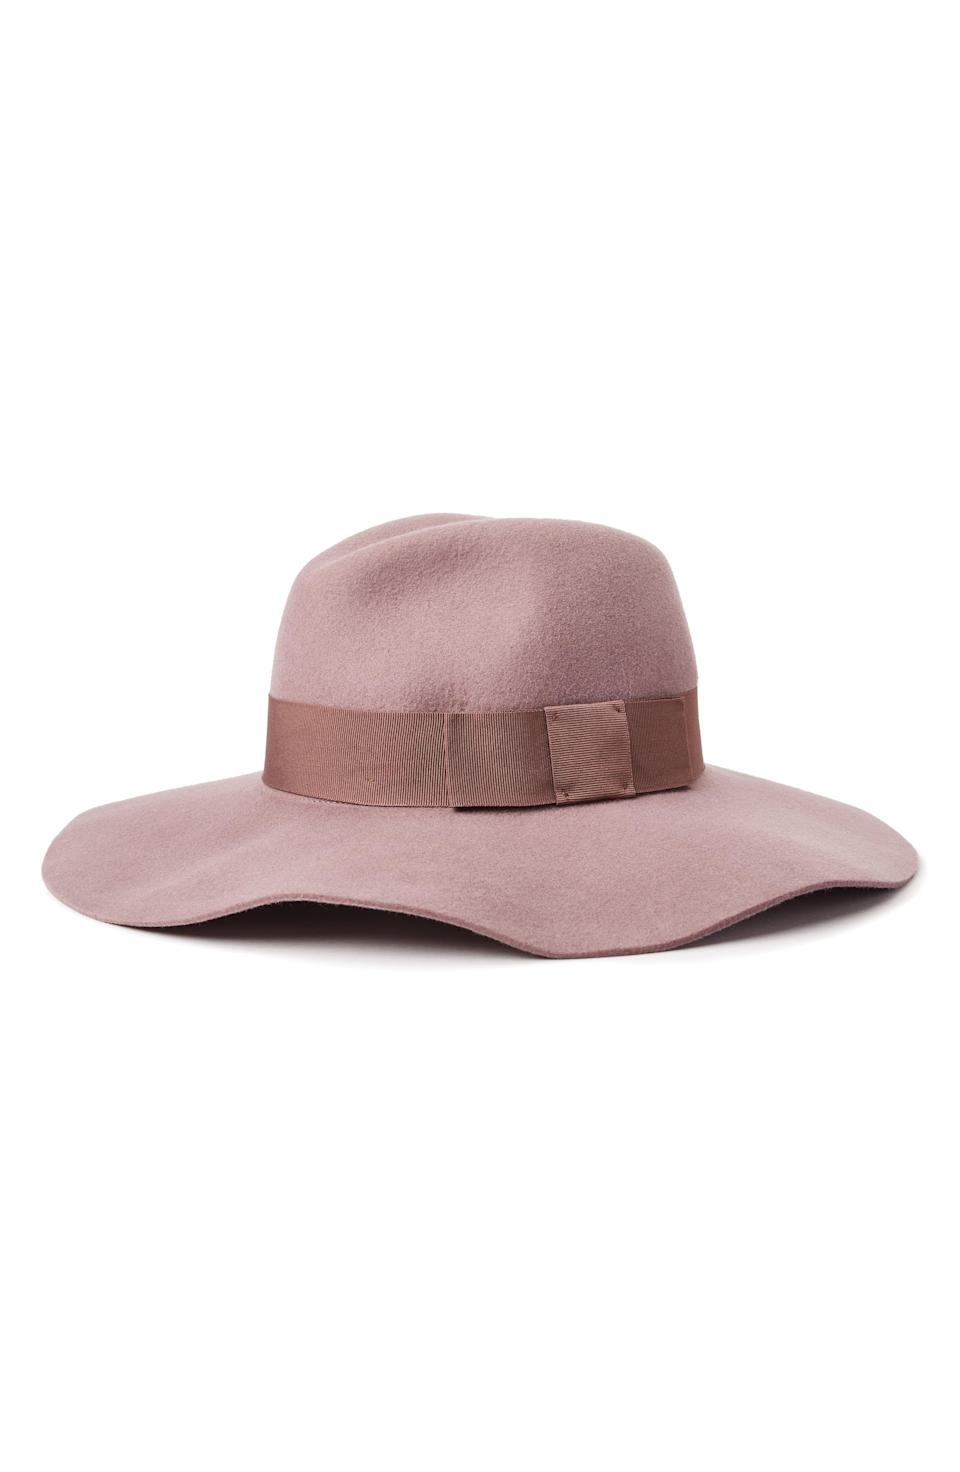 """<p><strong>BRIXTON</strong></p><p>nordstrom.com</p><p><strong>$64.00</strong></p><p><a href=""""https://go.redirectingat.com?id=74968X1596630&url=https%3A%2F%2Fshop.nordstrom.com%2Fs%2Fbrixton-piper-floppy-wool-hat%2F3997472&sref=https%3A%2F%2Fwww.oprahmag.com%2Fstyle%2Fg33275493%2Ffall-hats-for-women%2F"""" rel=""""nofollow noopener"""" target=""""_blank"""" data-ylk=""""slk:Shop Now"""" class=""""link rapid-noclick-resp"""">Shop Now</a></p><p>""""In a romantic shade of mauve, this wide-brim floppy hat is a must for the bohemian aesthetic,"""" says Nazzaro. <br></p>"""